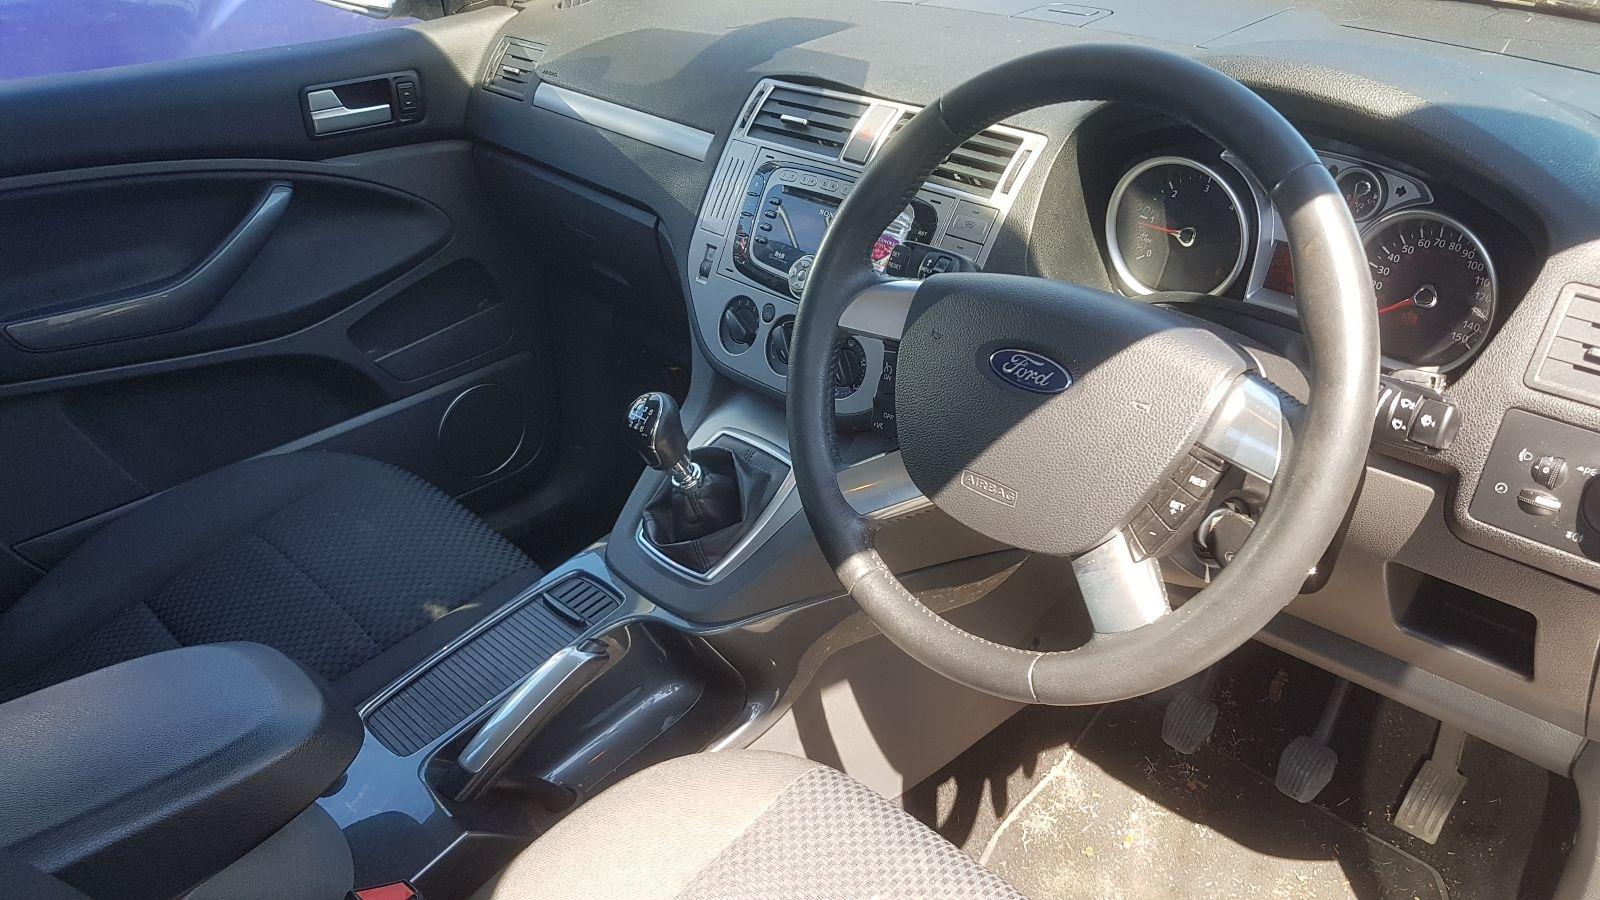 View Auto part Ford Focus C Max 2009 5 Door Bodystyle.mpv